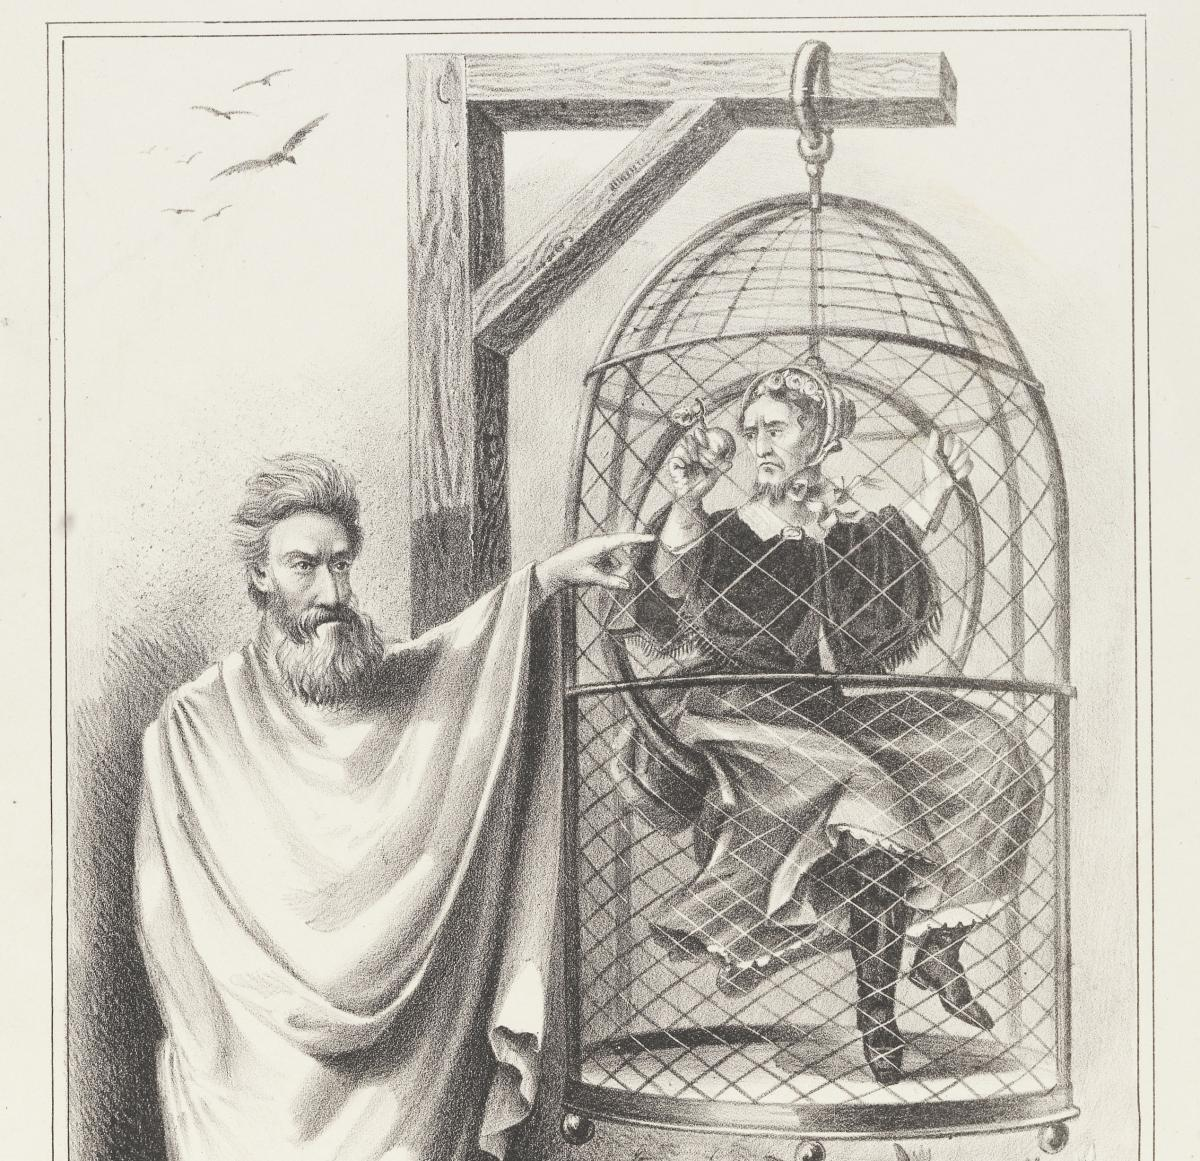 Detail from political cartoon showing John Brown standing next to a birdcage suspended from a gallows, in which sits Jefferson Davis, clothed in a women's dress and bonnet.